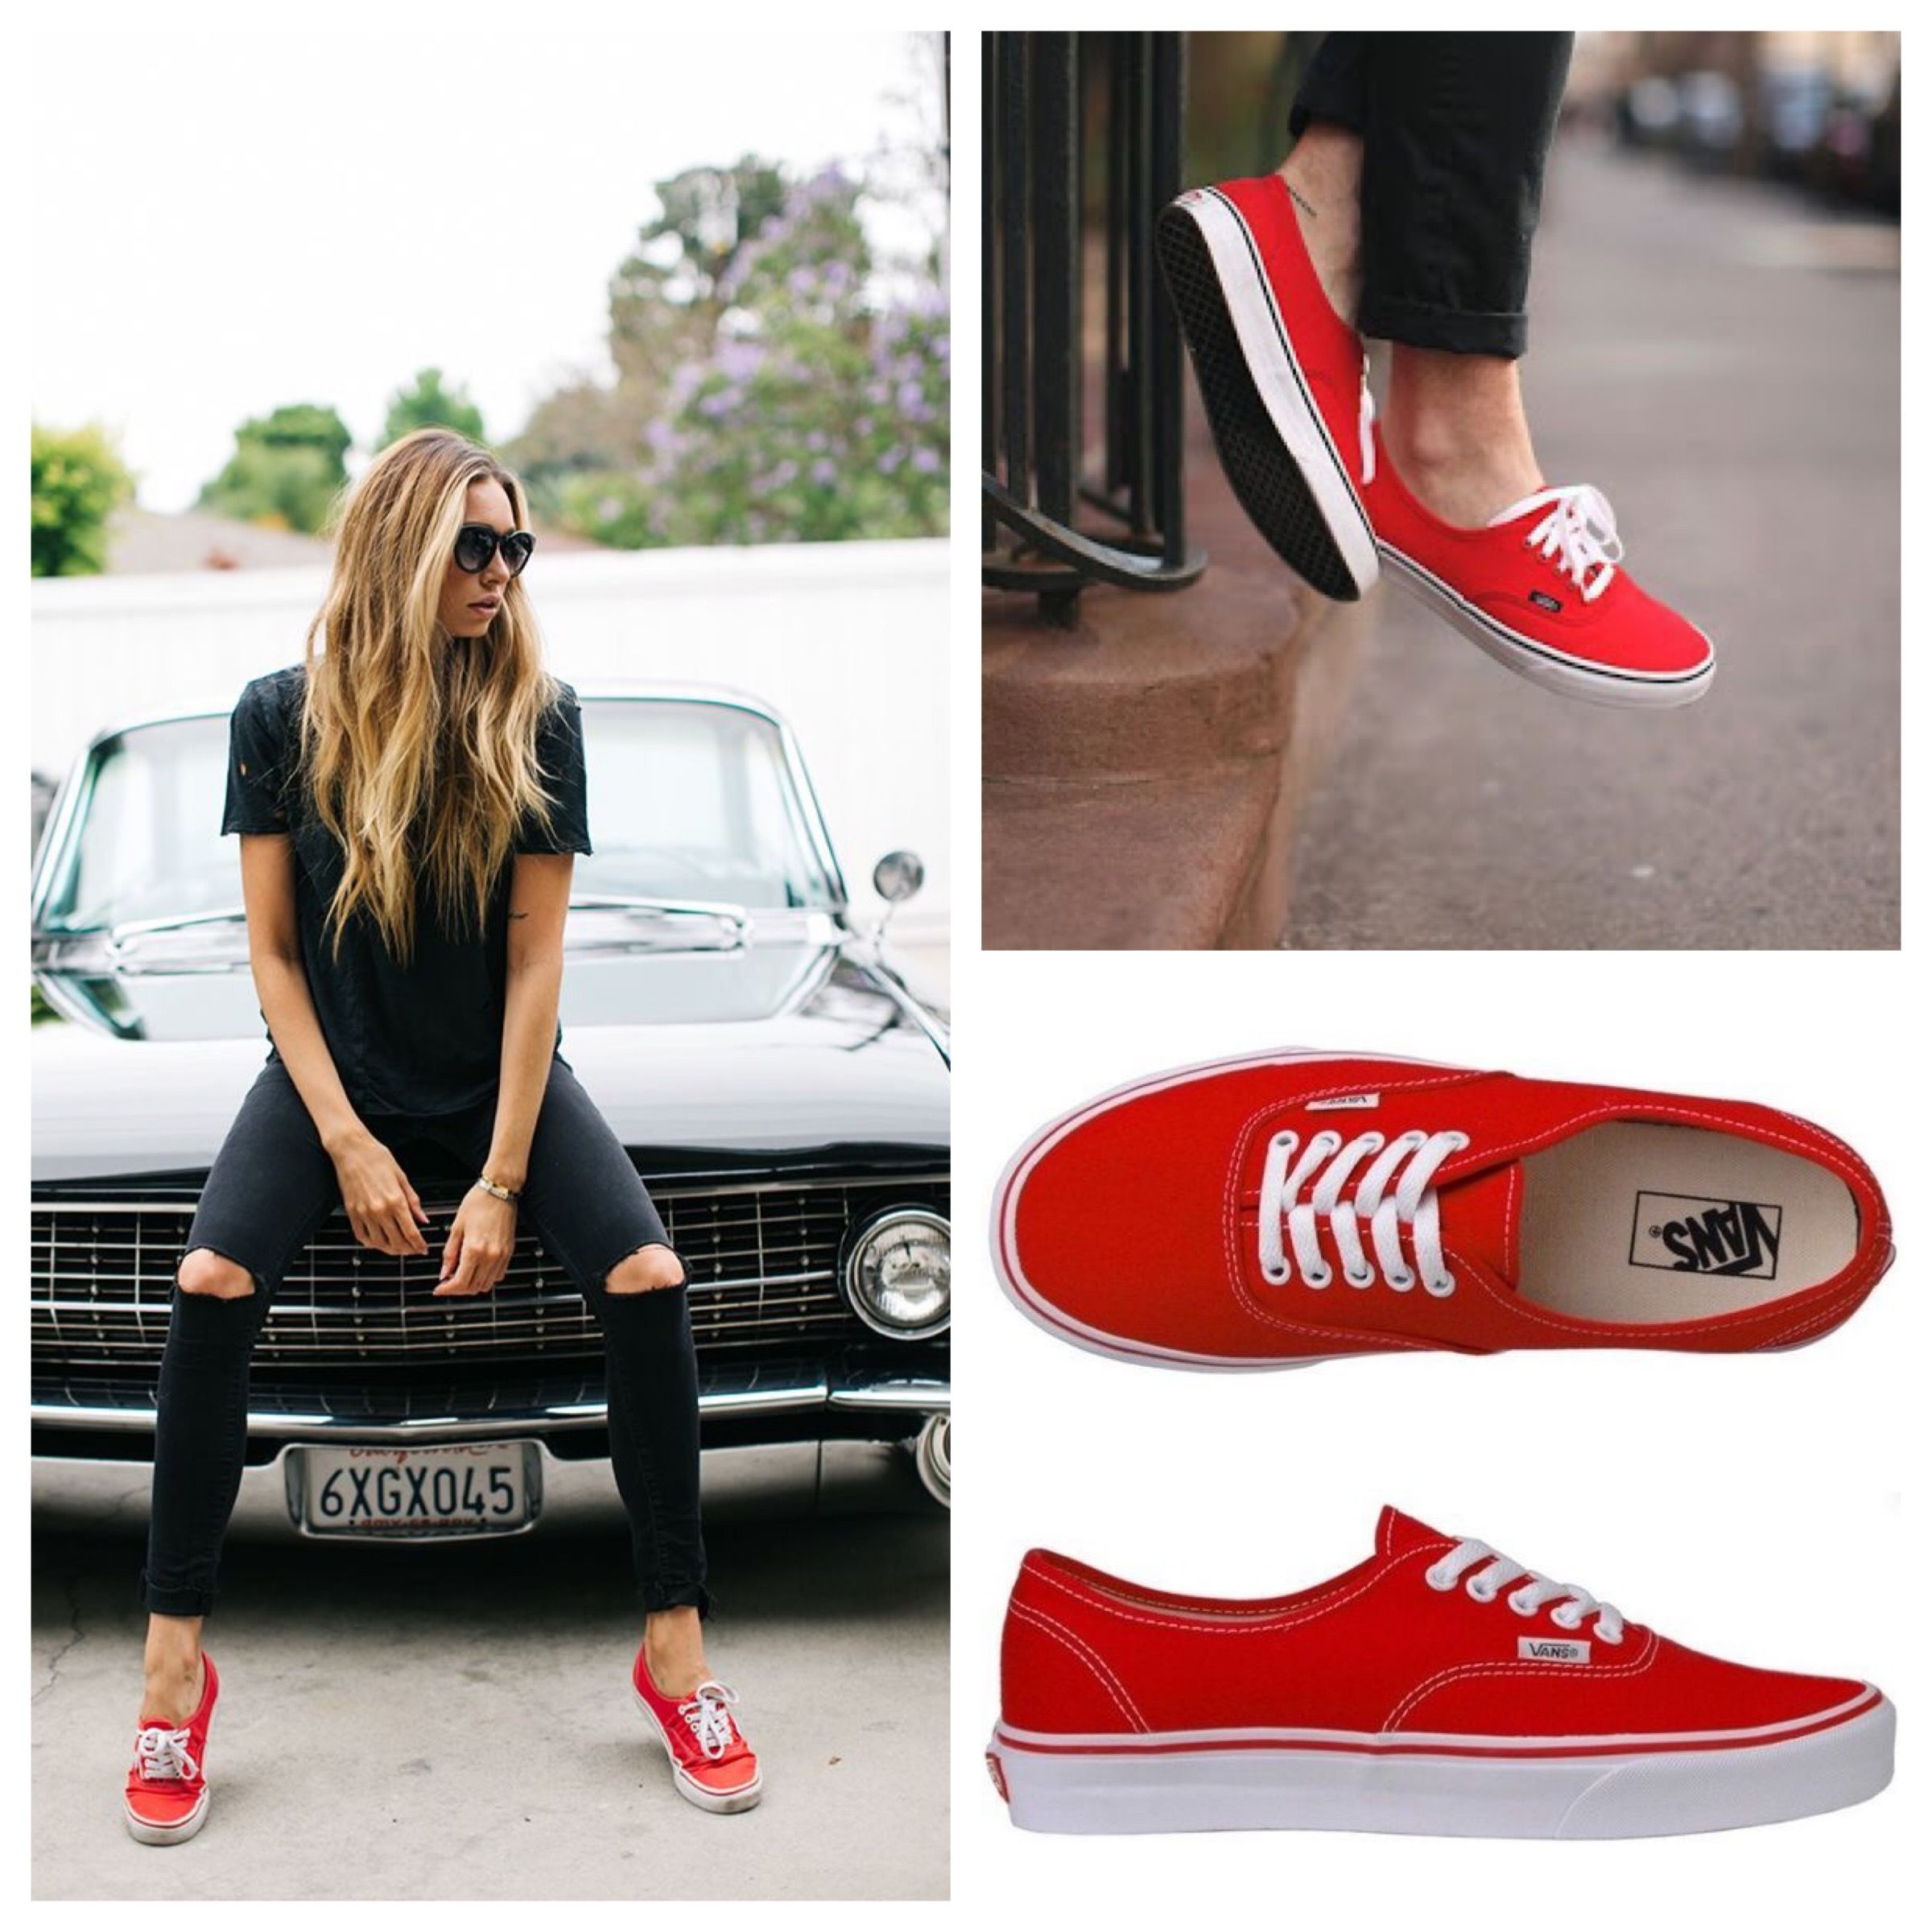 490b2b8b6f Red Vans outfit idea. Casual. | Ideas | Red vans outfit, Vans shoes ...